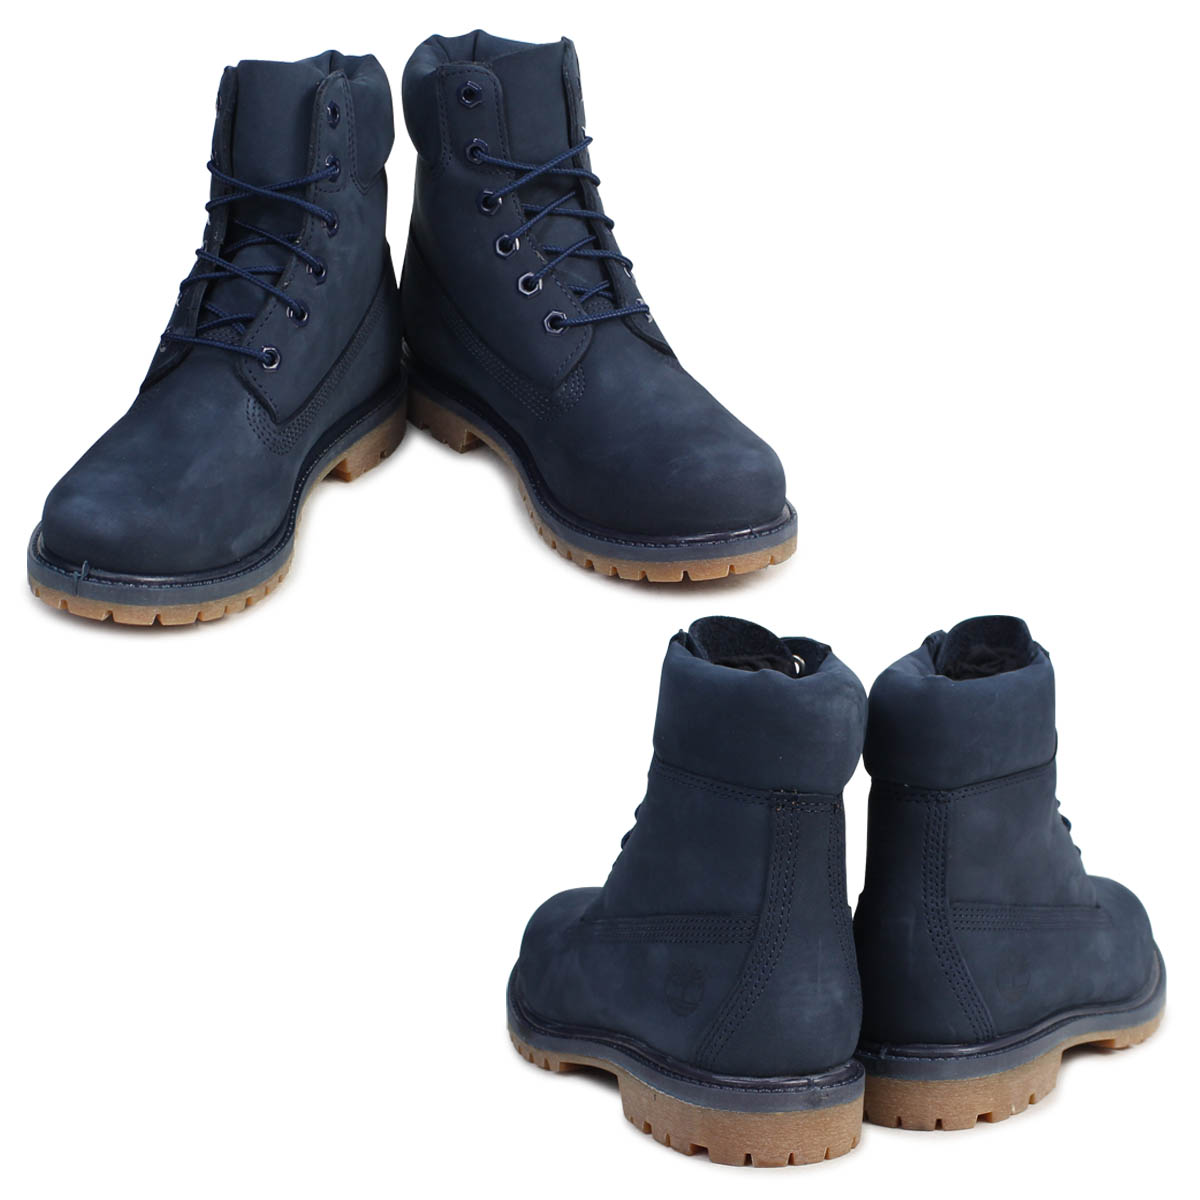 6 inches of Timberland men s lady s Timberland boots 6INCHI PREMIUM  WATERPROOF BOOTS A1K41 W Wise waterproofing navy  8 10 Shinnyu load  f3e0564ce325